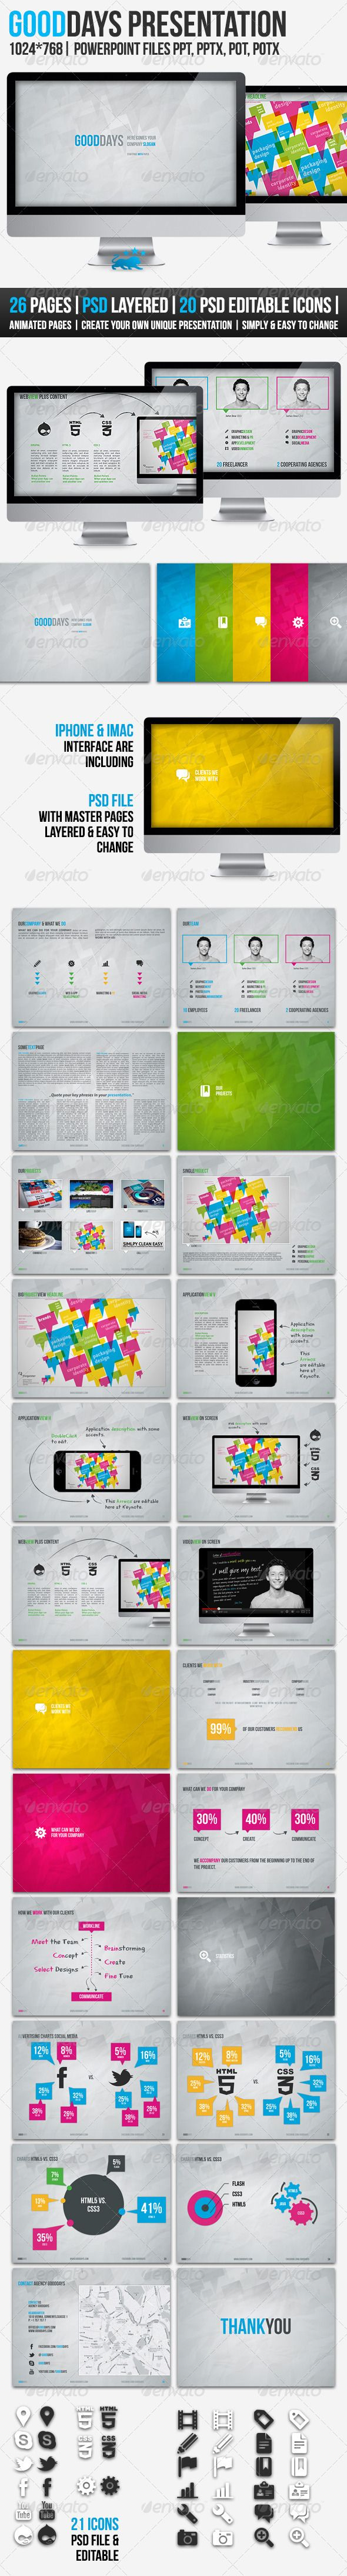 Nokia x5 00 images amp pictures becuo - Gooddays 26 Pages Powerpoint Presentation